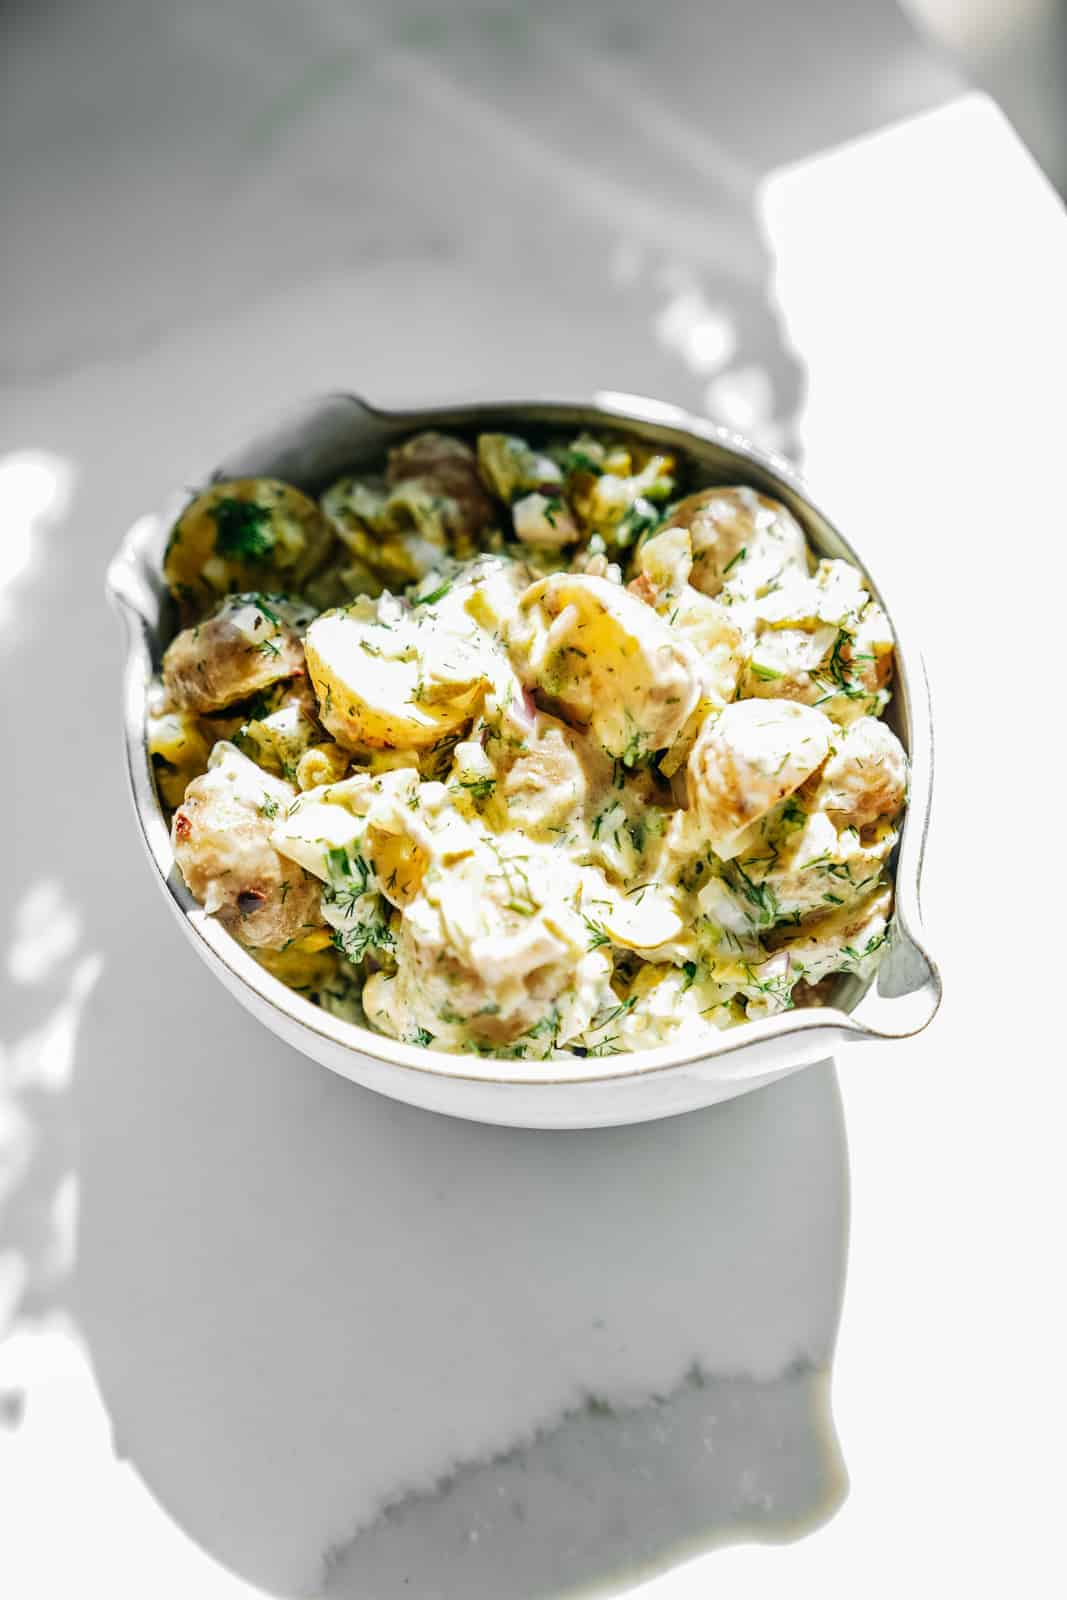 Big white bowl of yummy vegan potato salad.